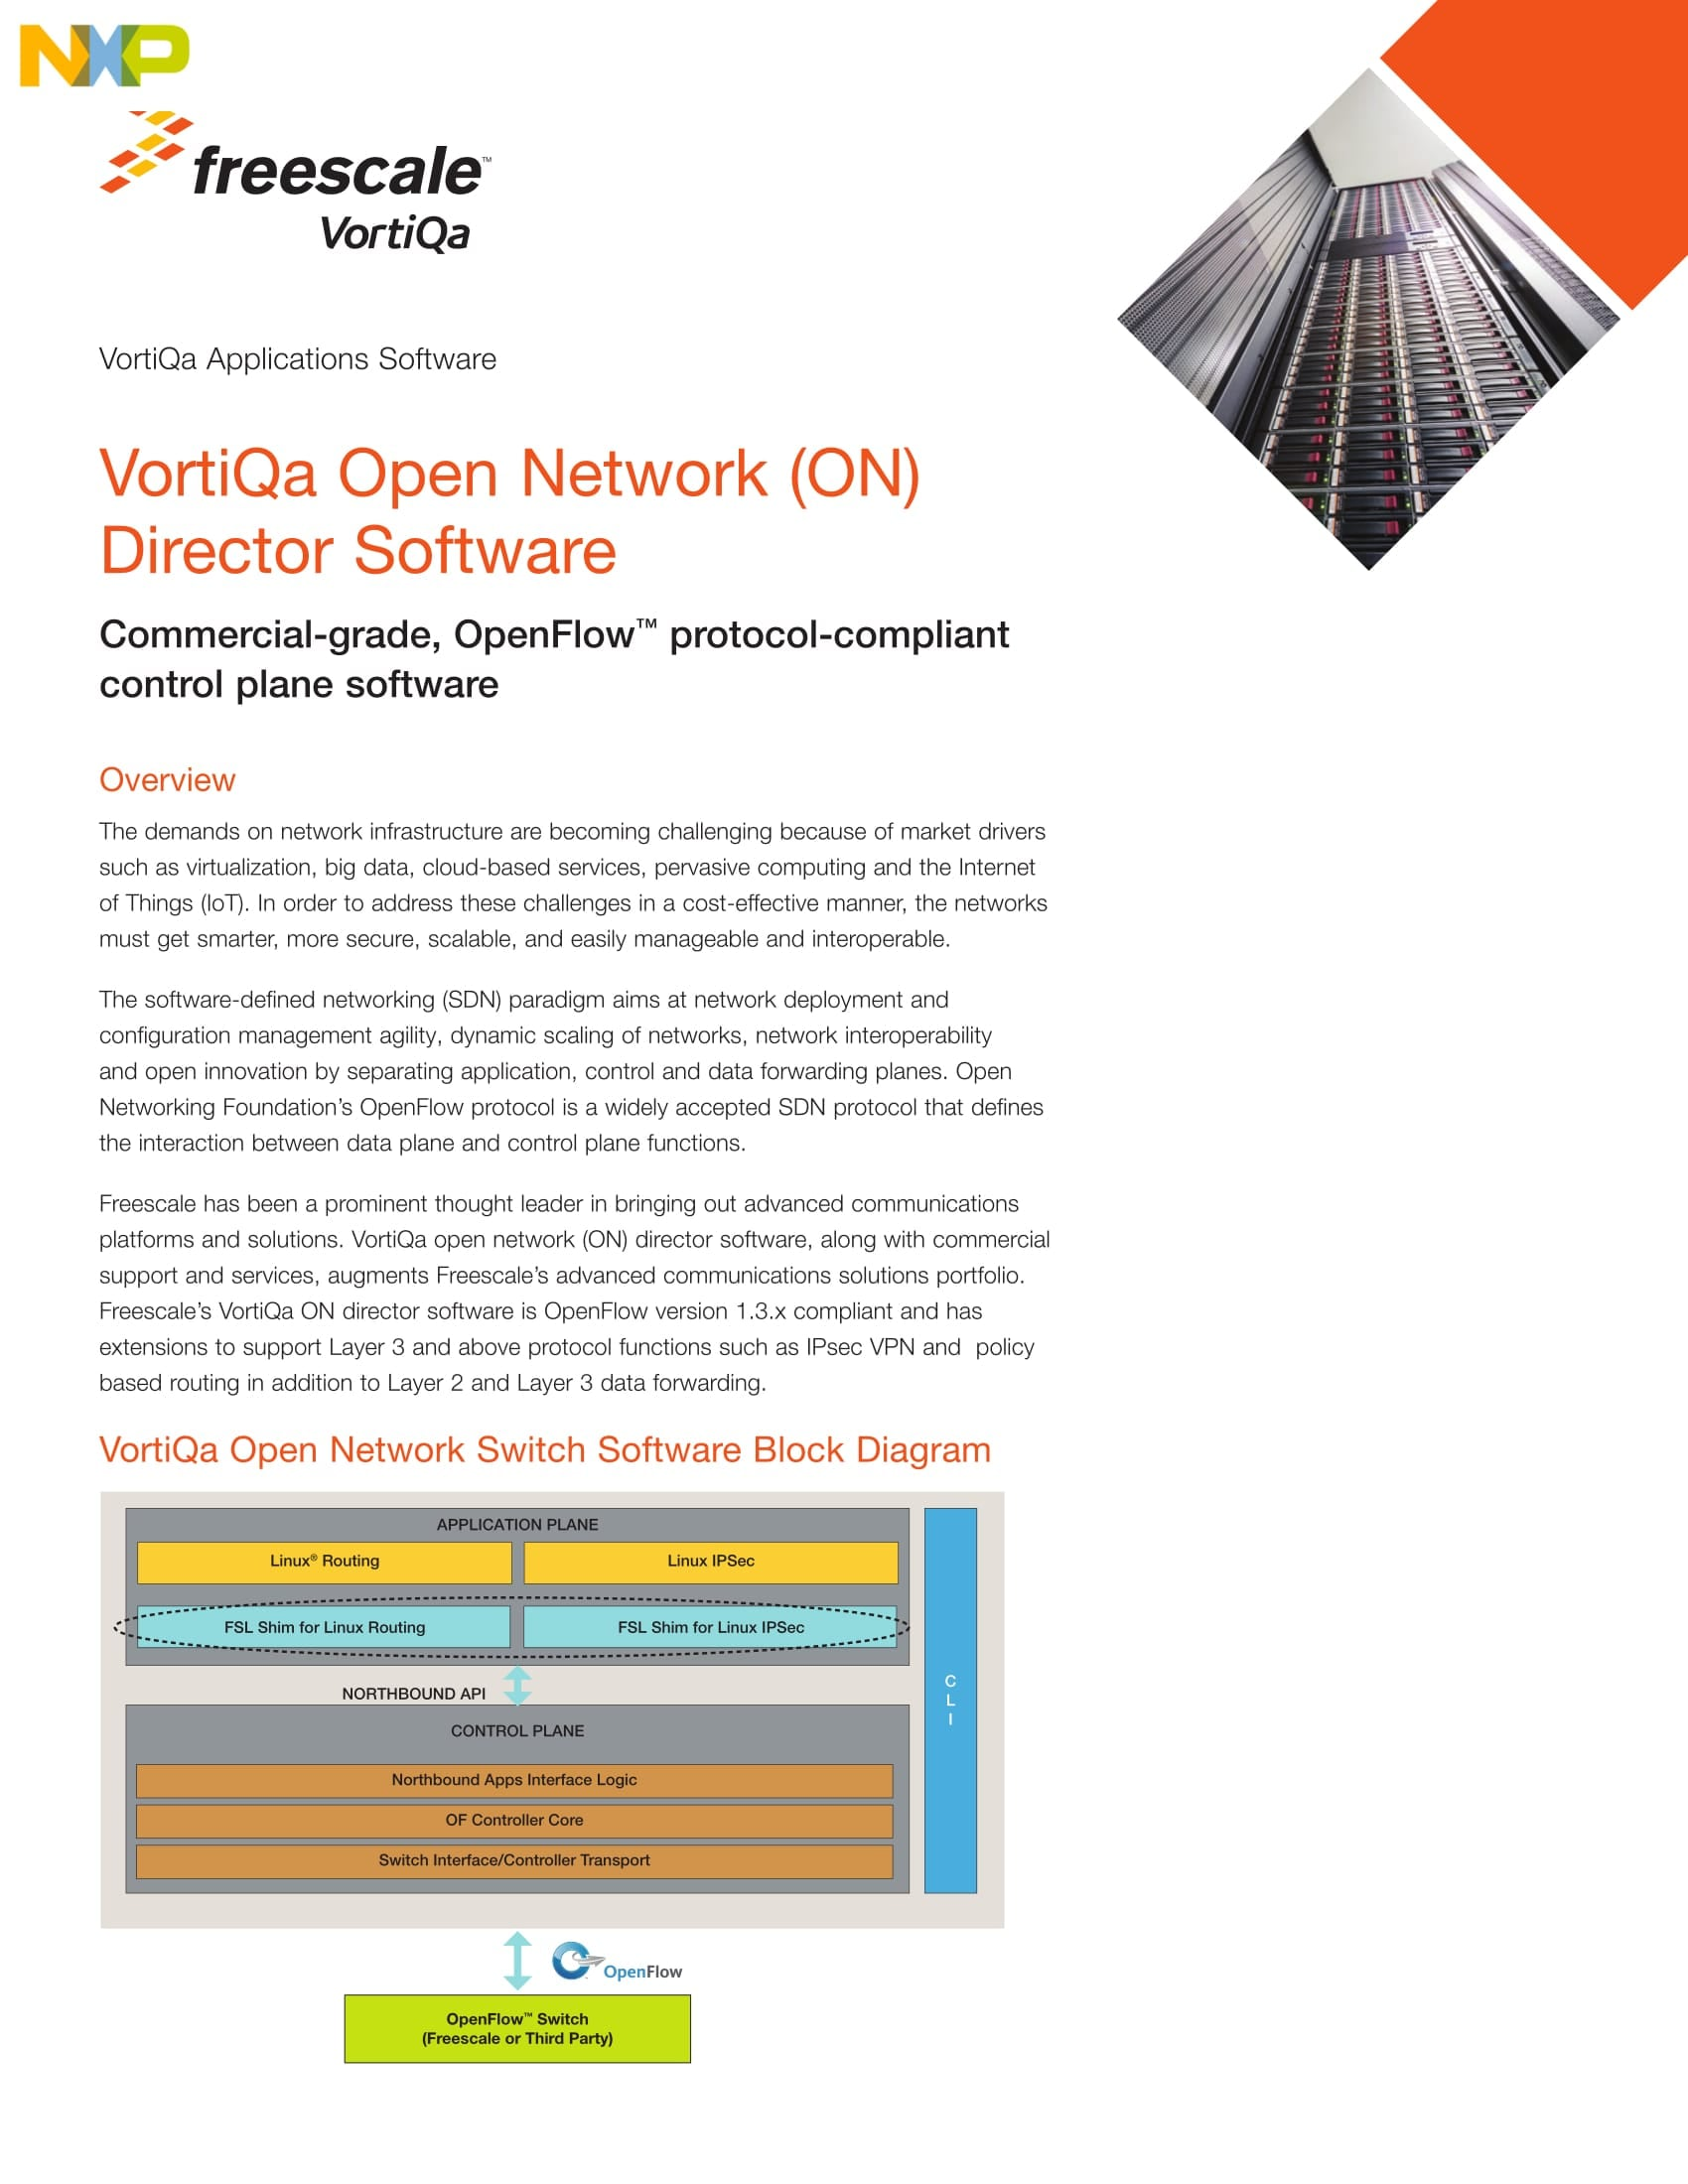 VortiQa Open Network (ON) Director SoftwarE